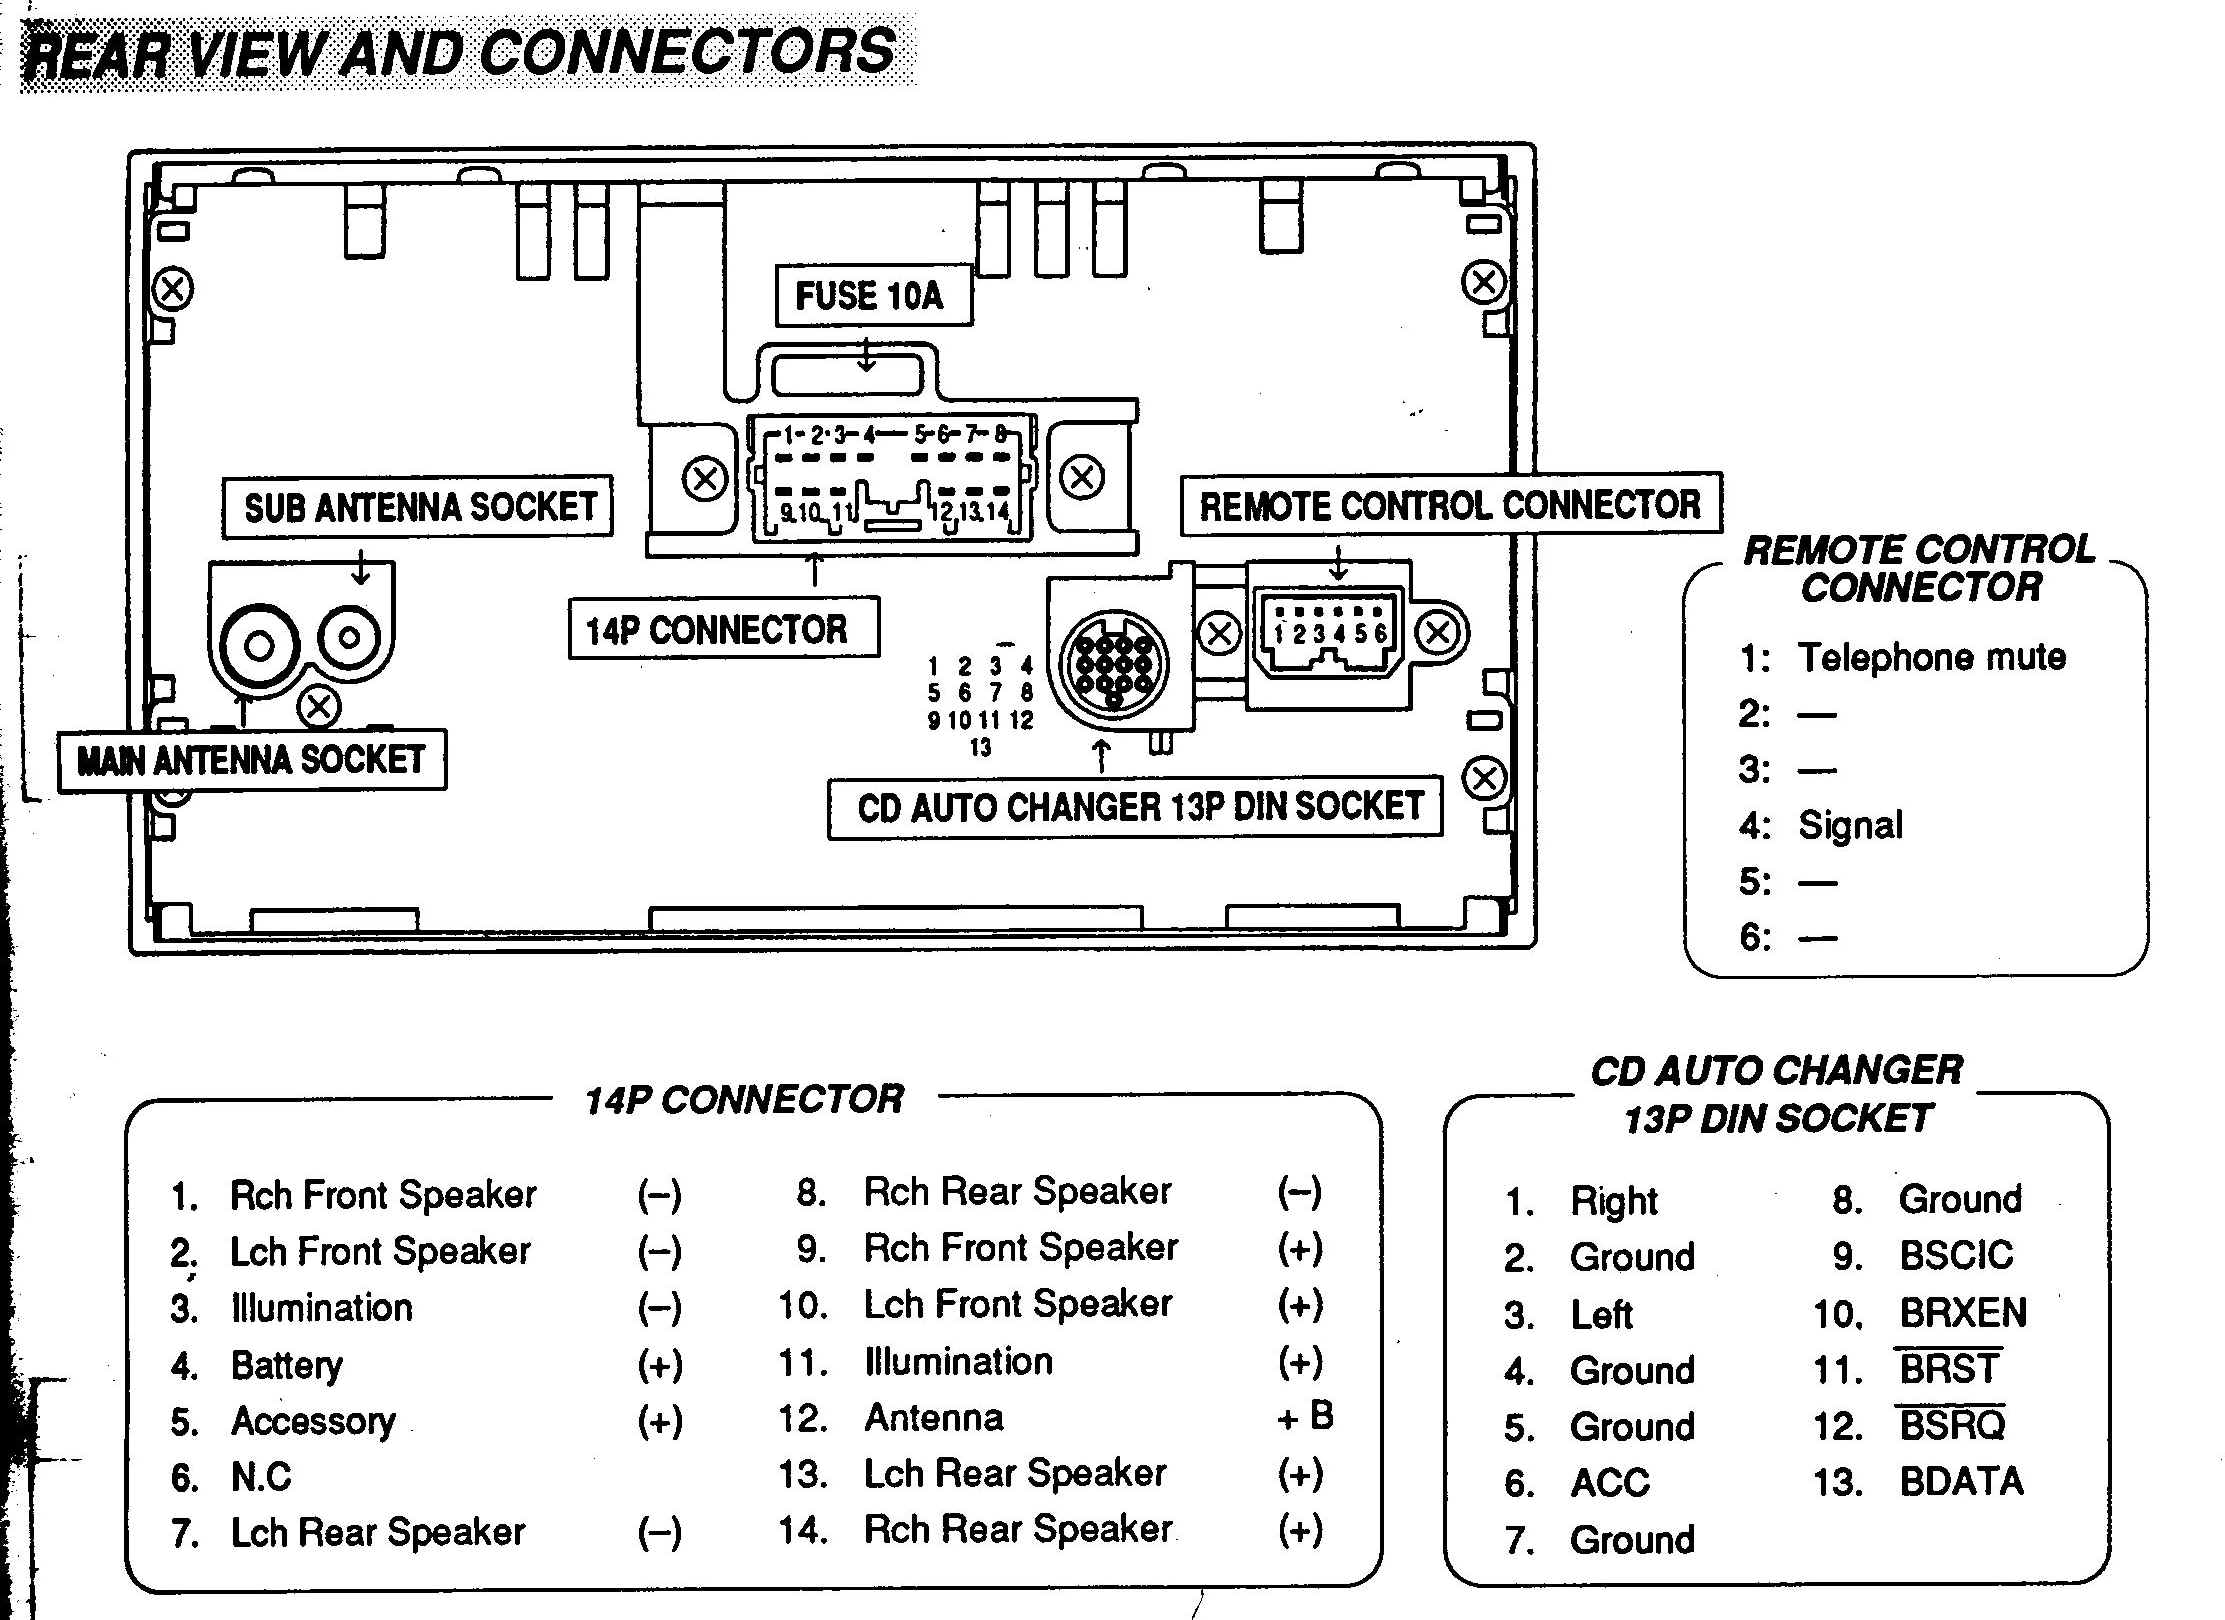 WireHarnessMit121003 kenwood car radio wiring diagram wirdig readingrat net 95 f350 radio wiring diagram at bayanpartner.co